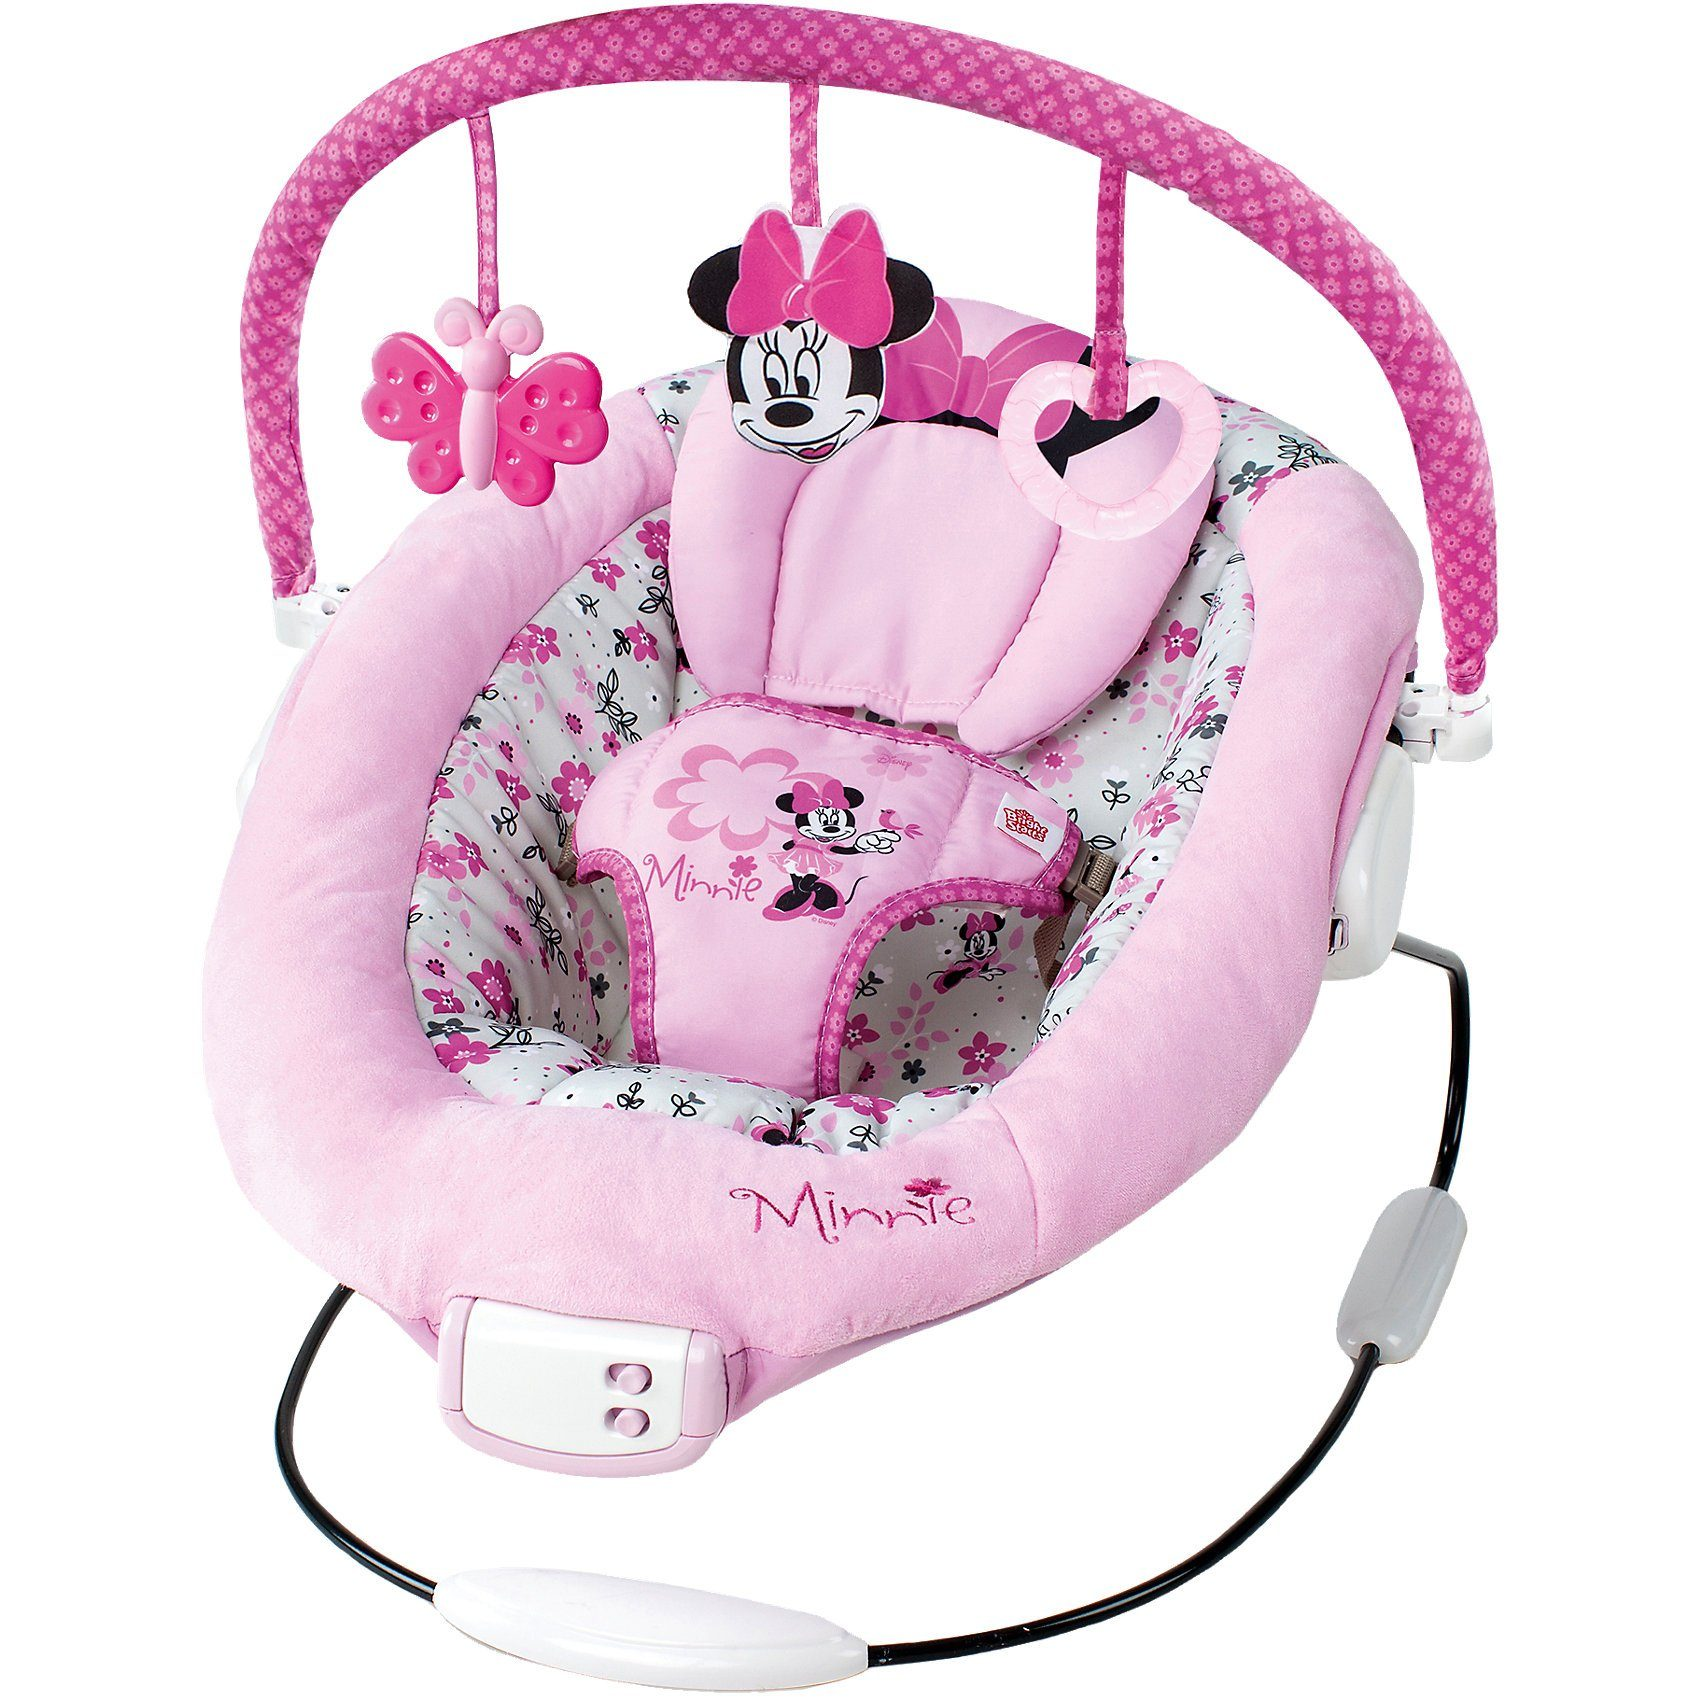 Kids II Wippe Bouncer Minnie Mouse, Minnie Garden Delights